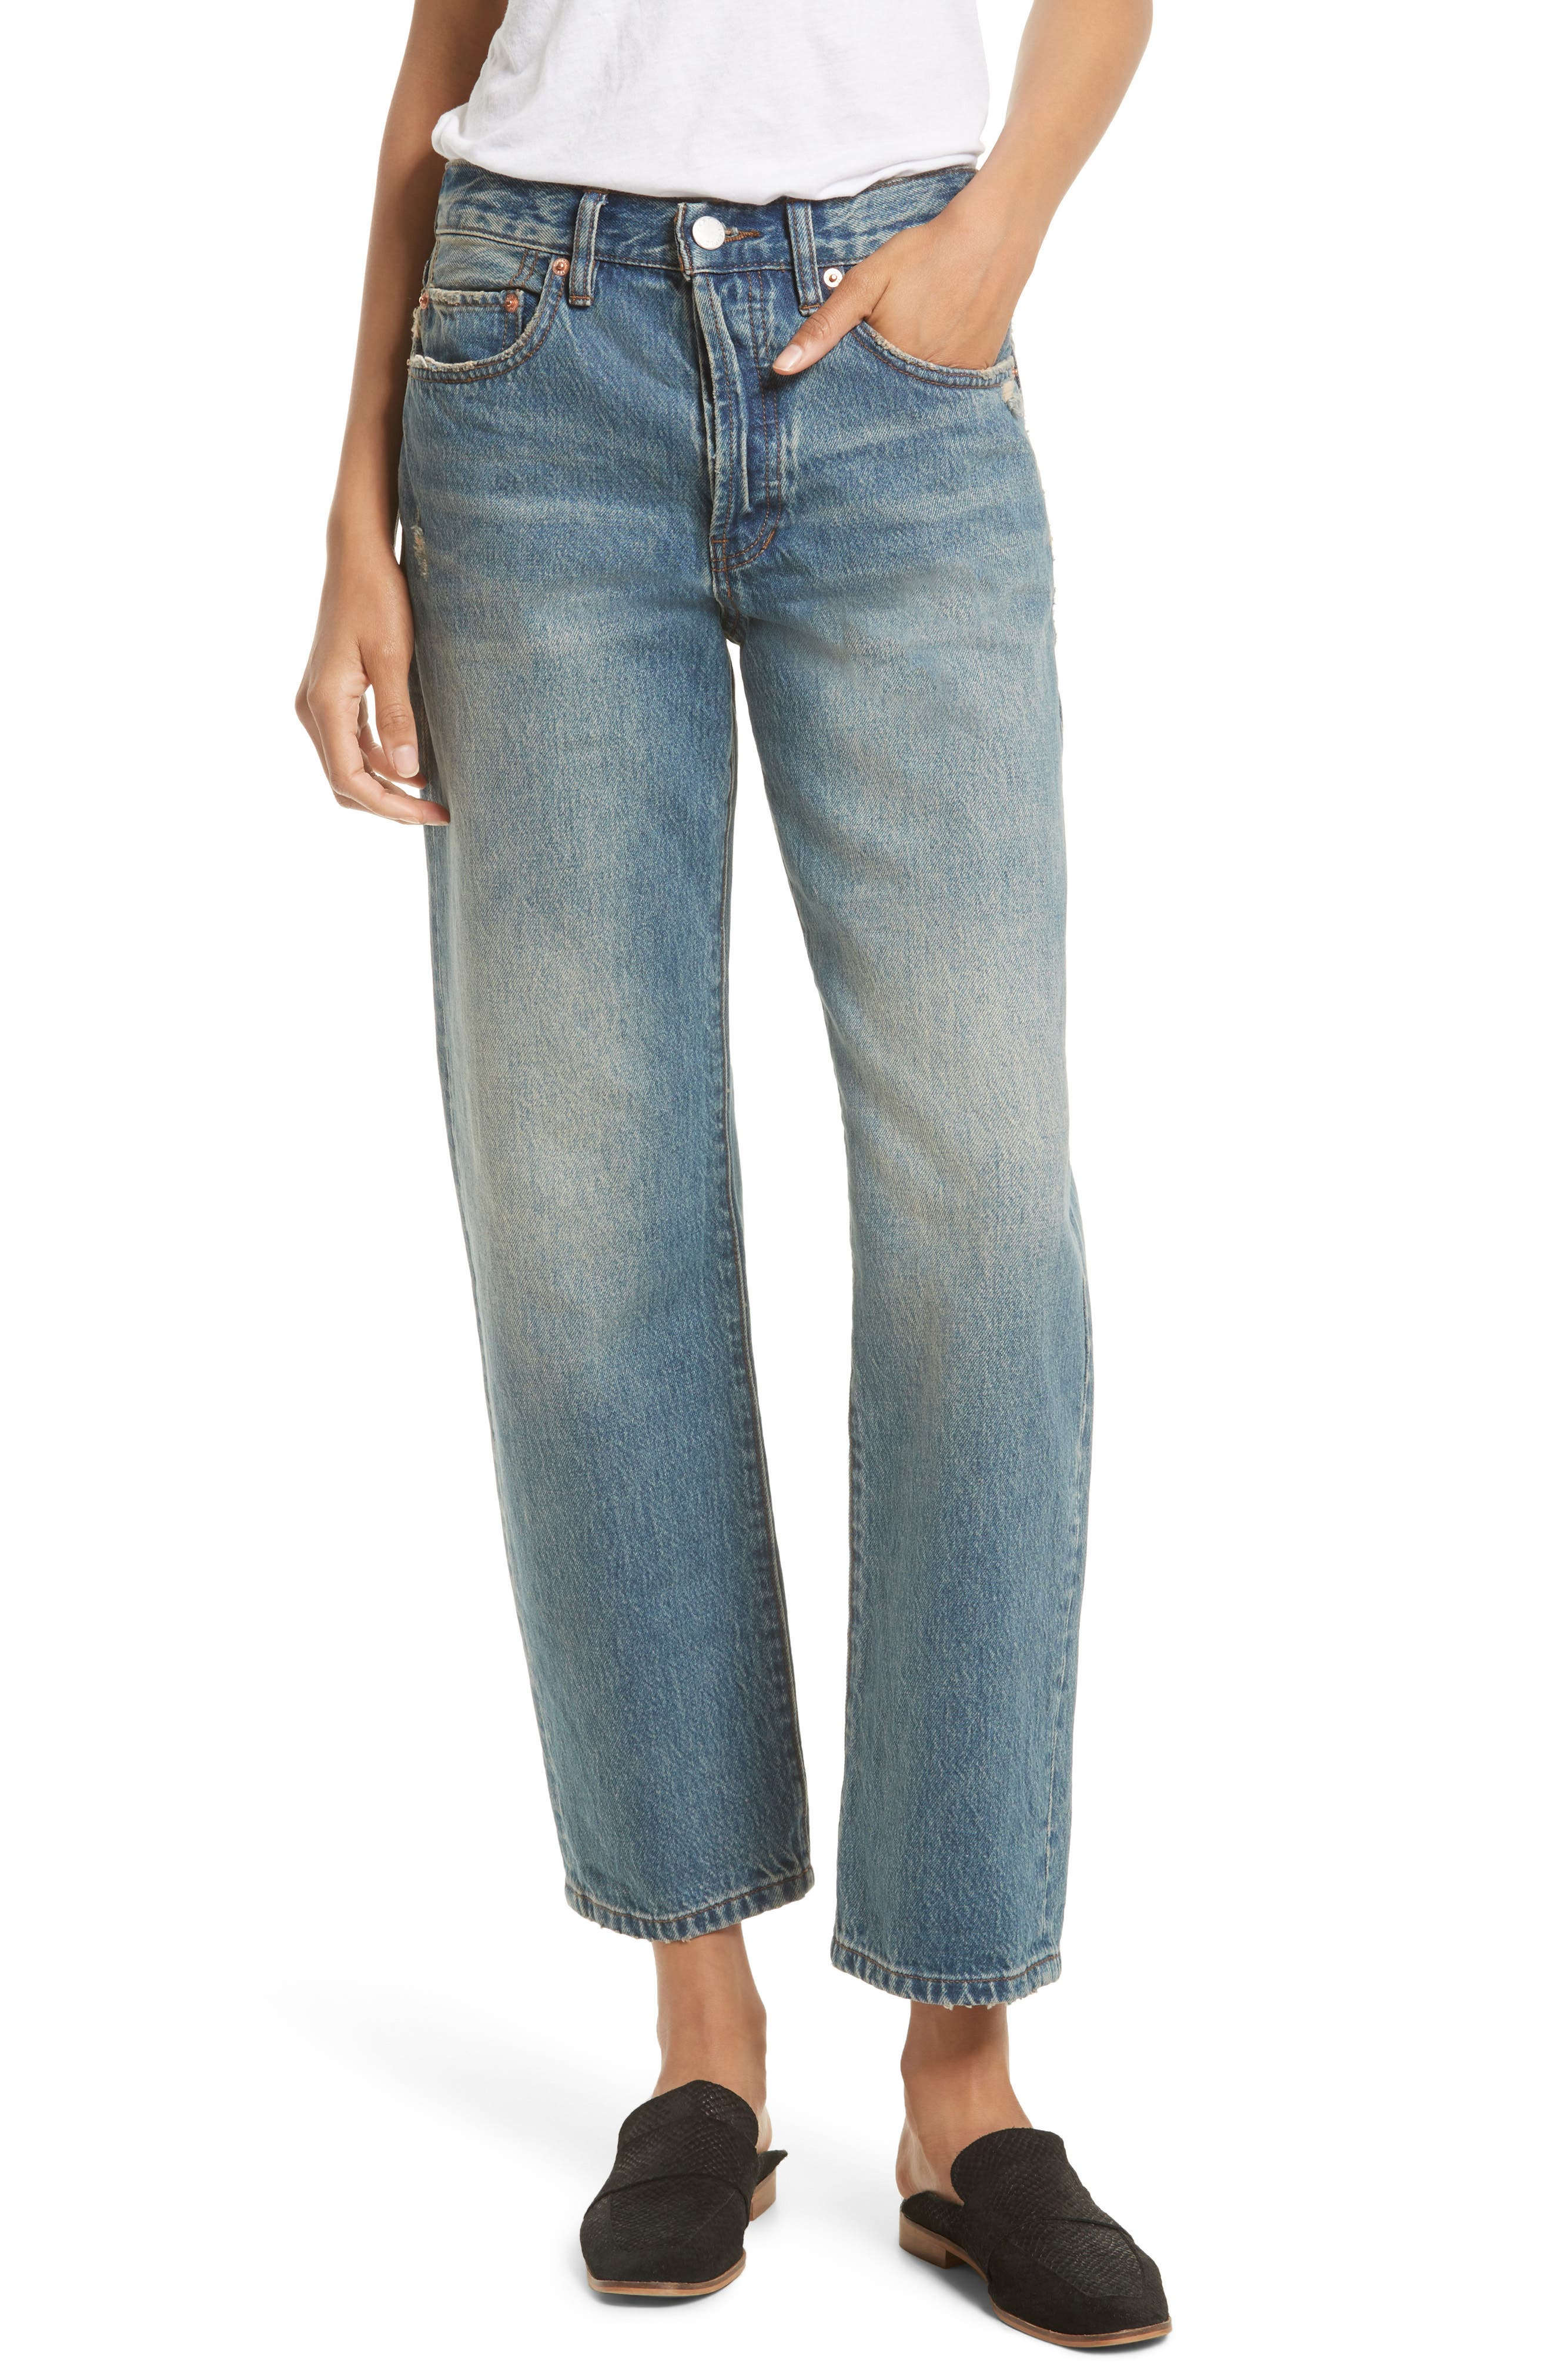 Alternate Image 1 Selected - Free People Universal Boyfriend Jeans (Sky)